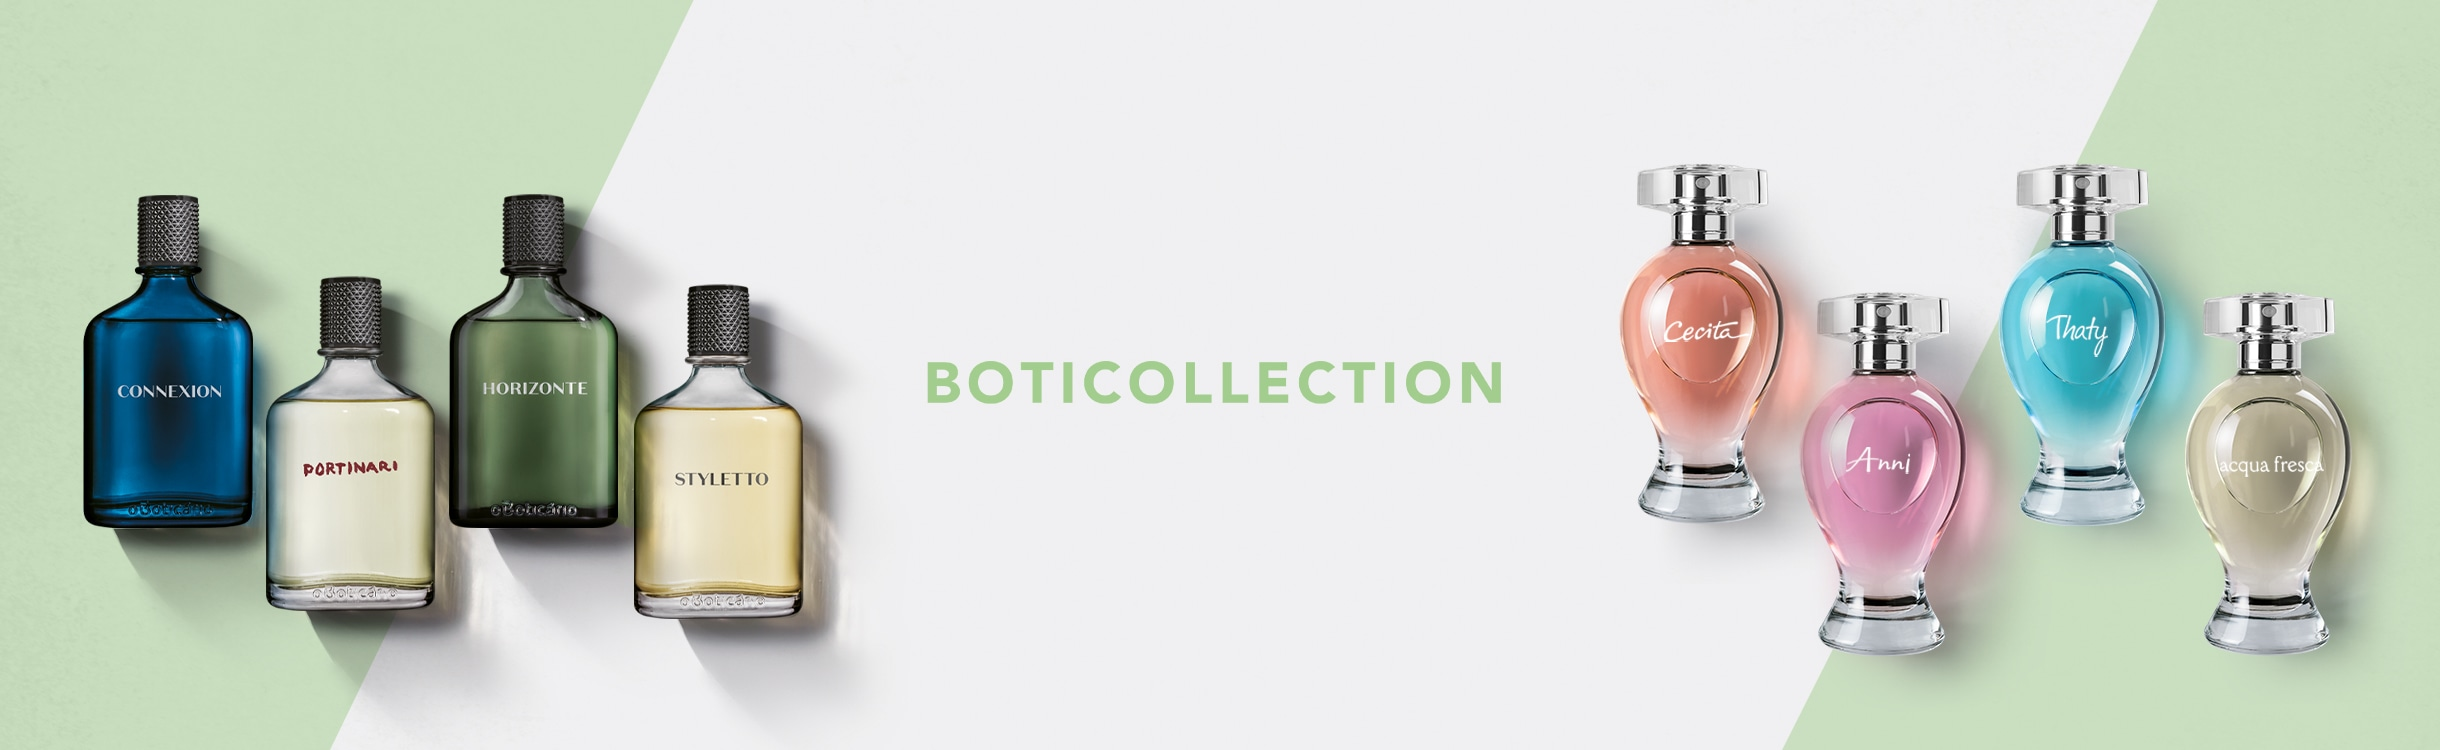 Boticollection Perfumaria